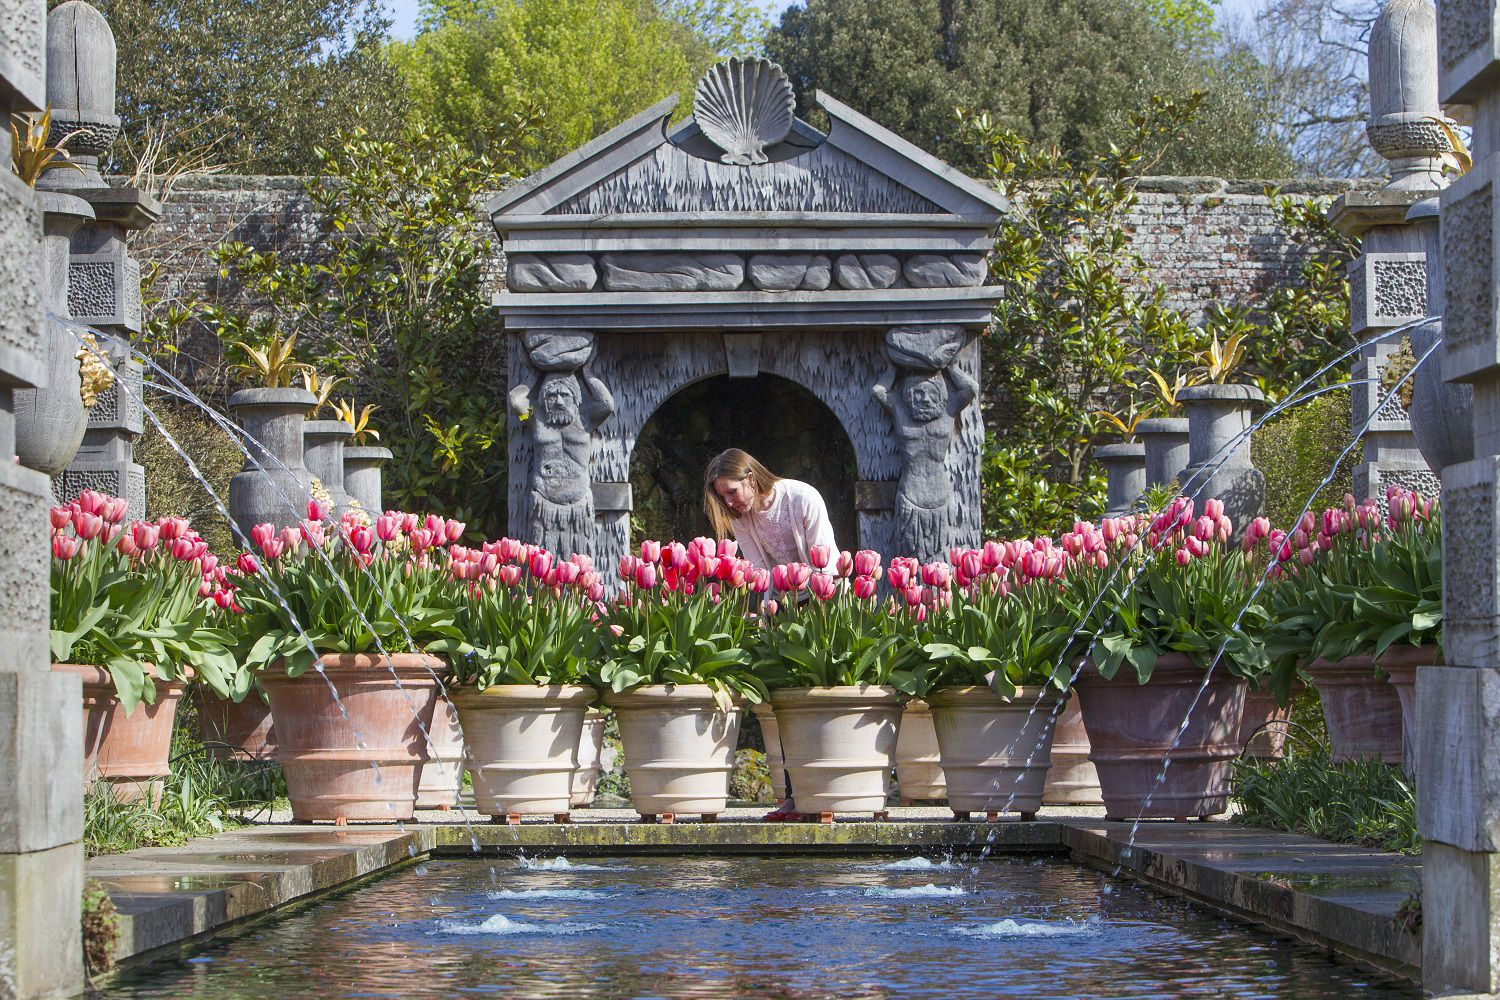 Great Castles, Cathedrals and Gardens in Southern England